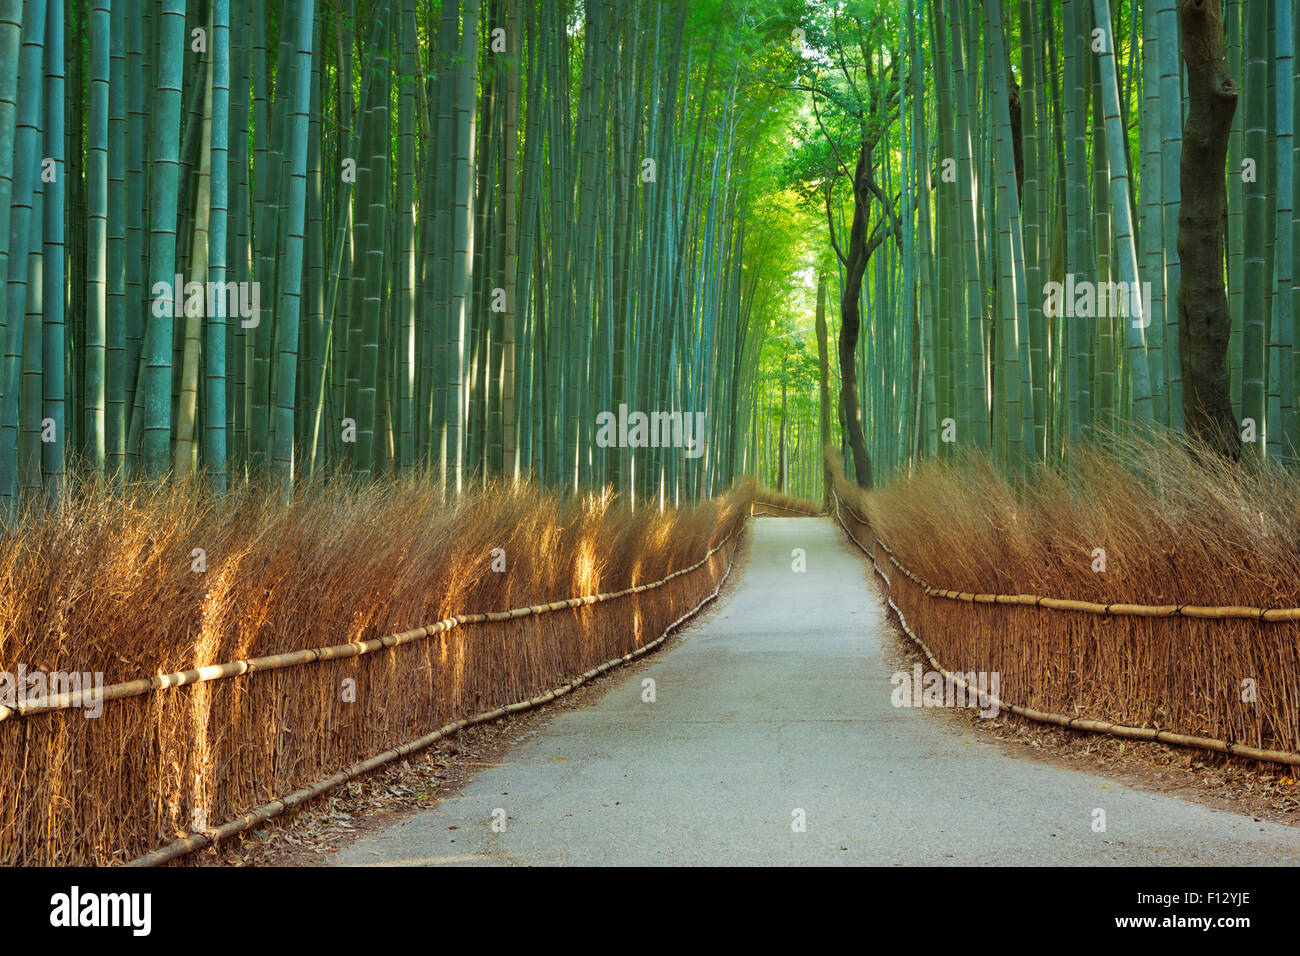 A path through a bamboo forest. Photographed at the Arashiyama bamboo grove near Kyoto, Japan. - Stock Image